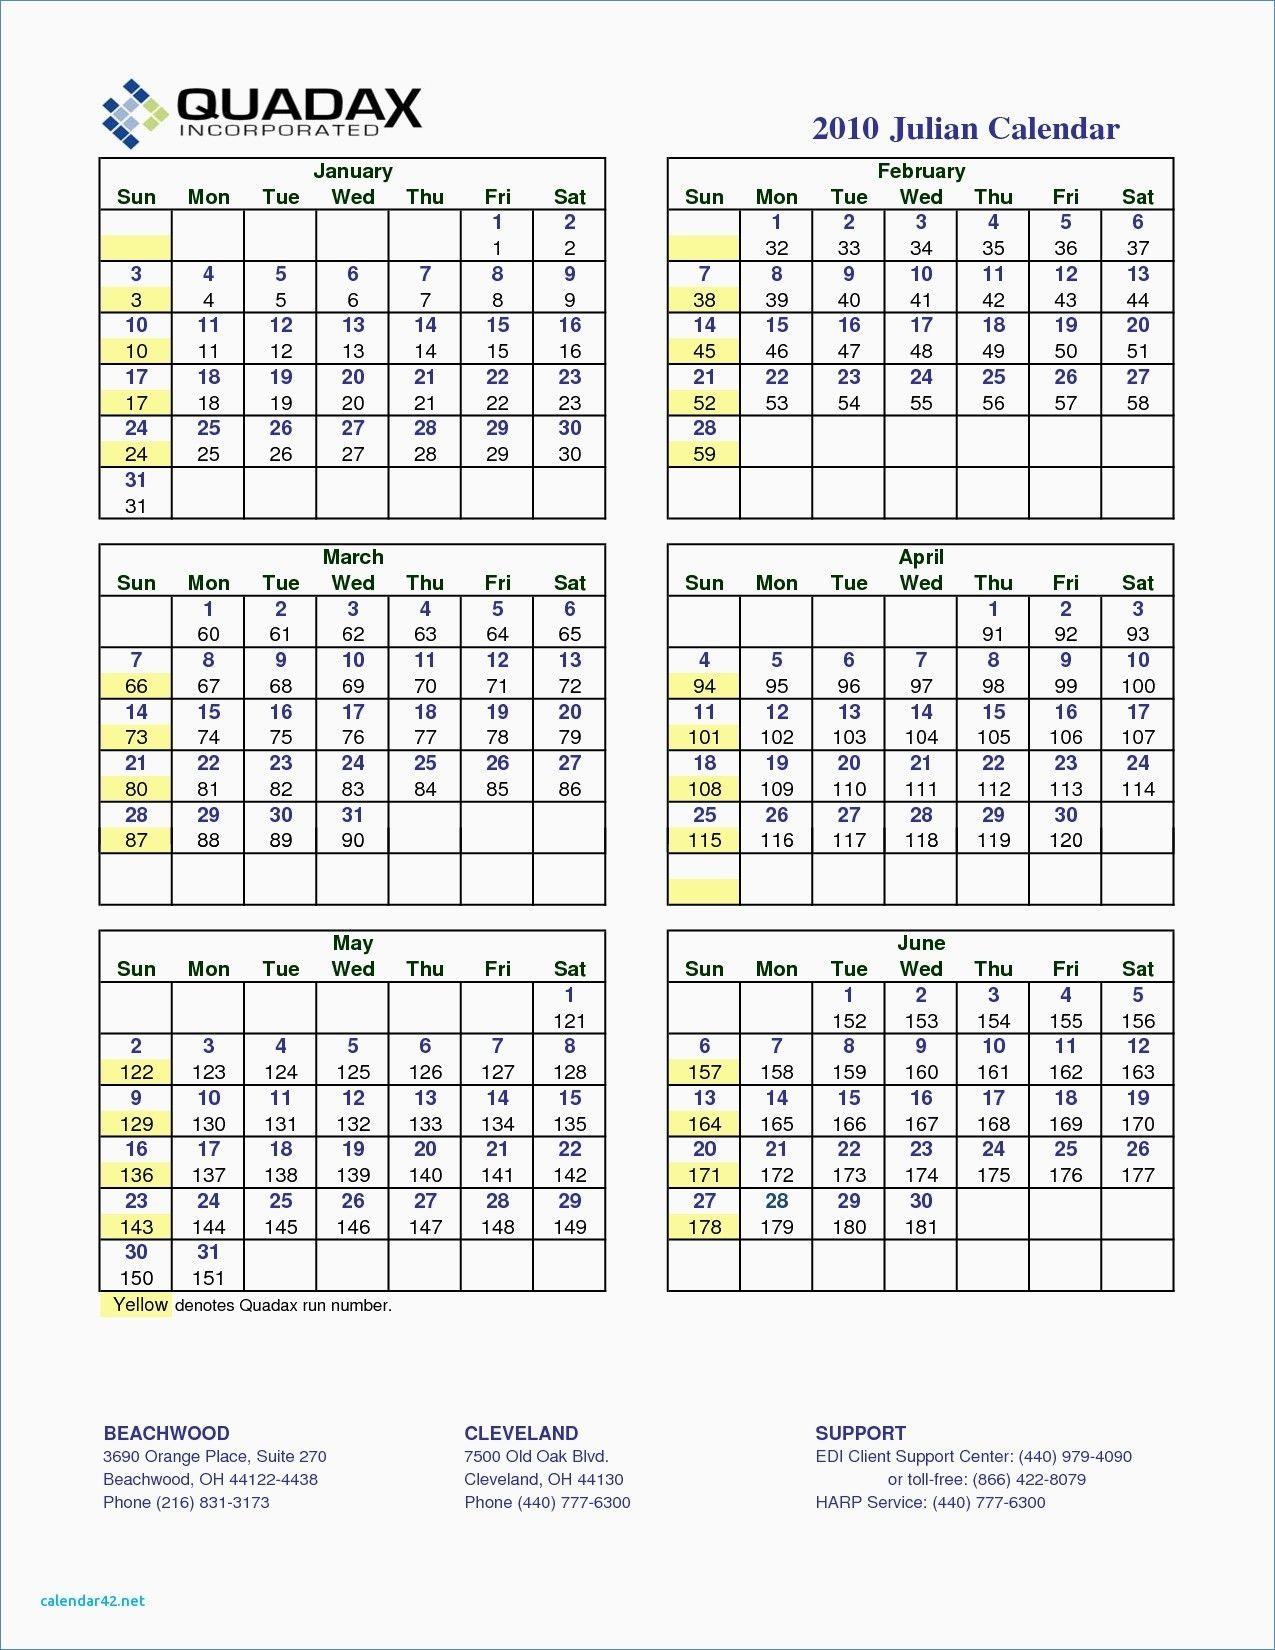 Julian Calendar 2019 Quadax July 2018 Calendar Sri Lanka